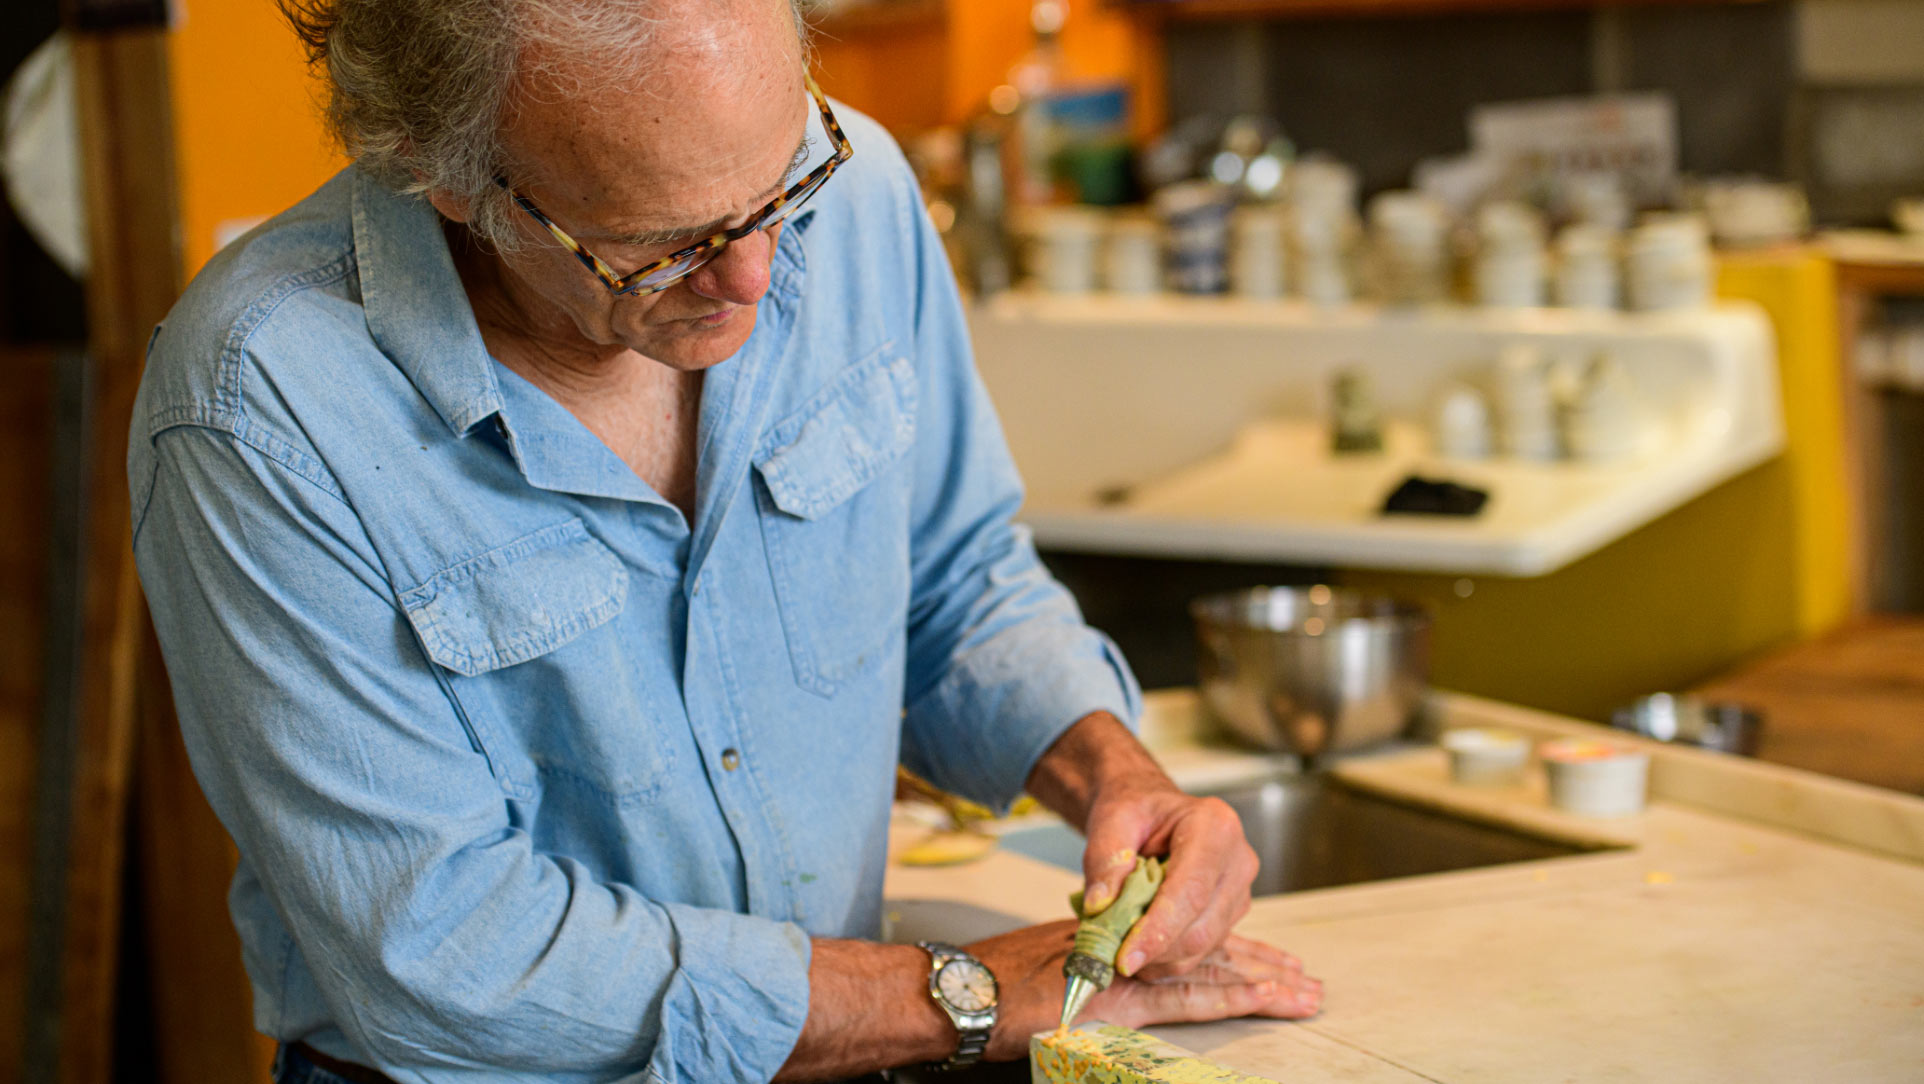 Lynn Sweet, an older man with gray hair and horn-rimmed glasses, does some detail work on a painting. He is wearing a blue button-up shirt.